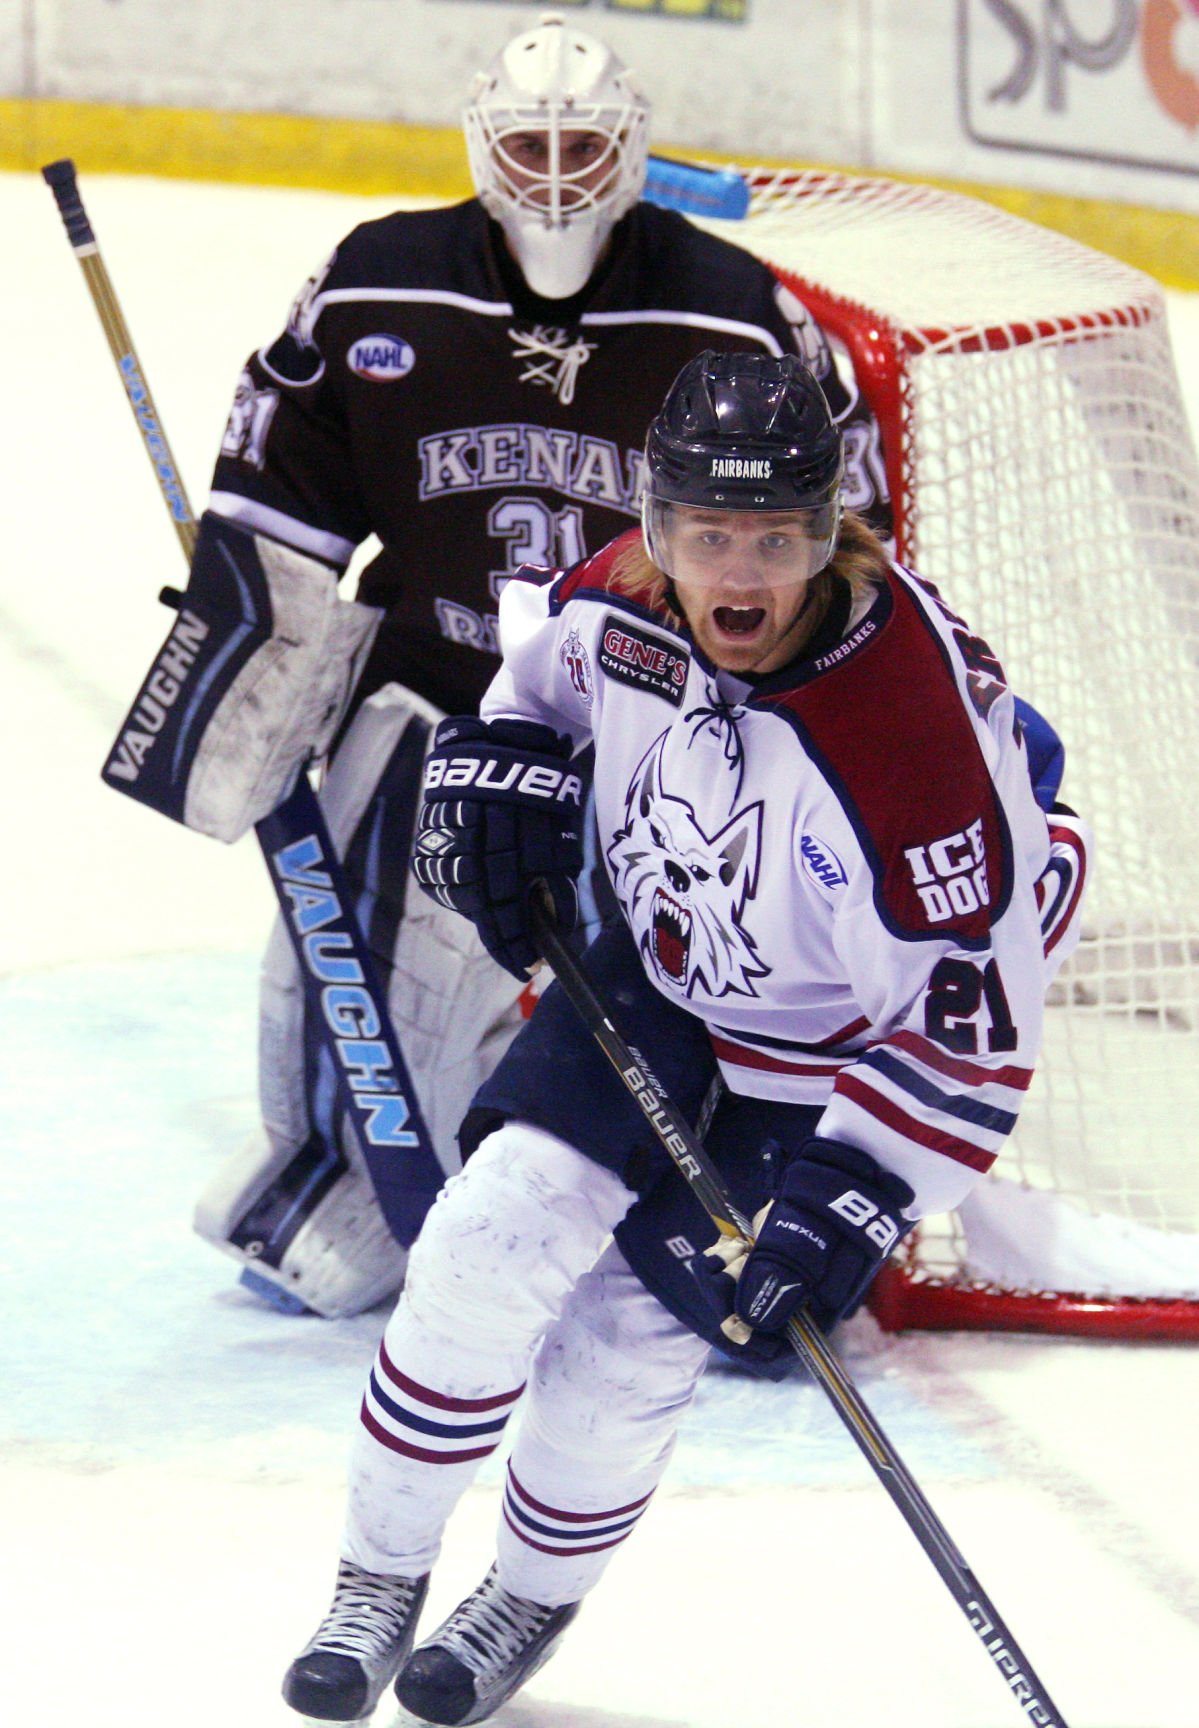 WCHA: Former Ice Dog Eriksson Commits To Lake Superior St.